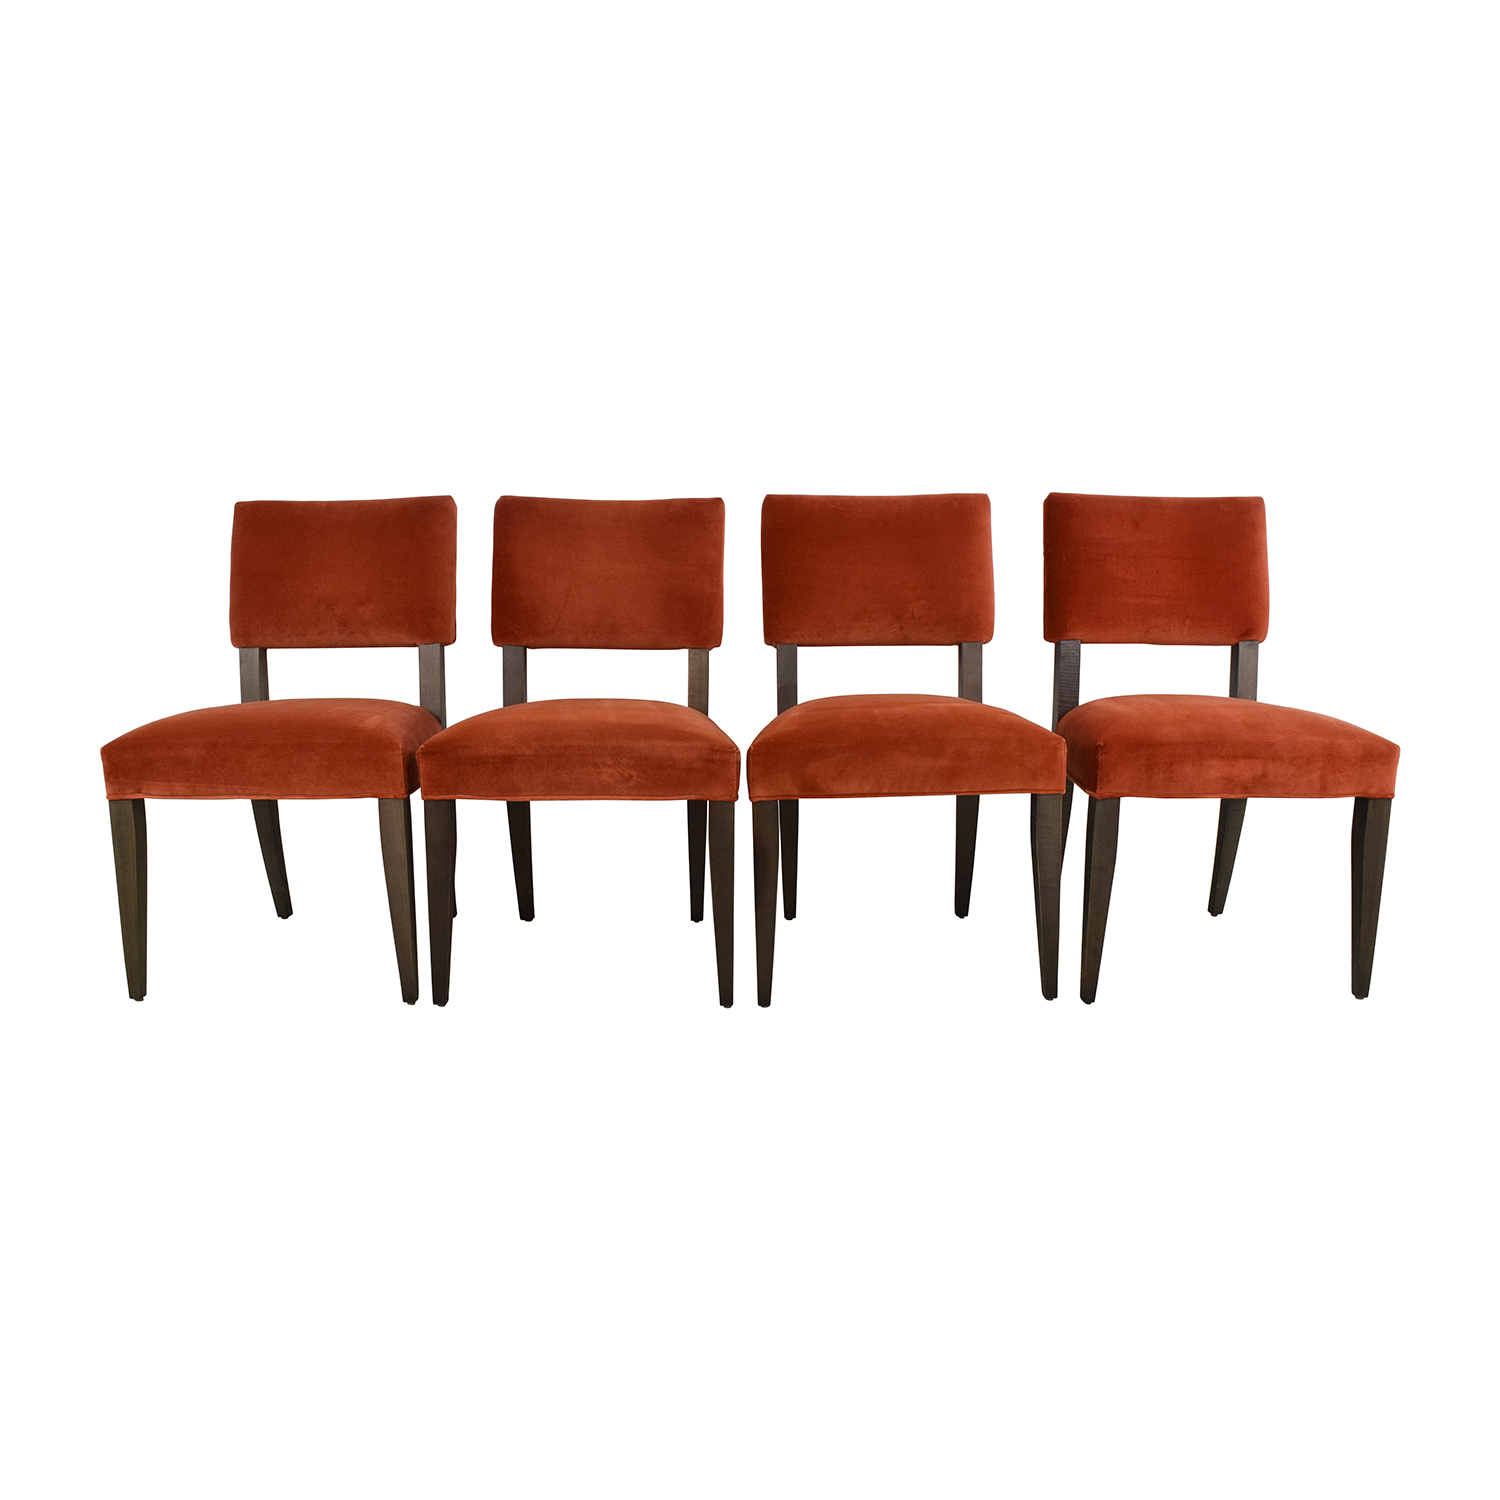 shop Crate & Barrel Living Room Chairs Crate and Barrel Dining Chairs